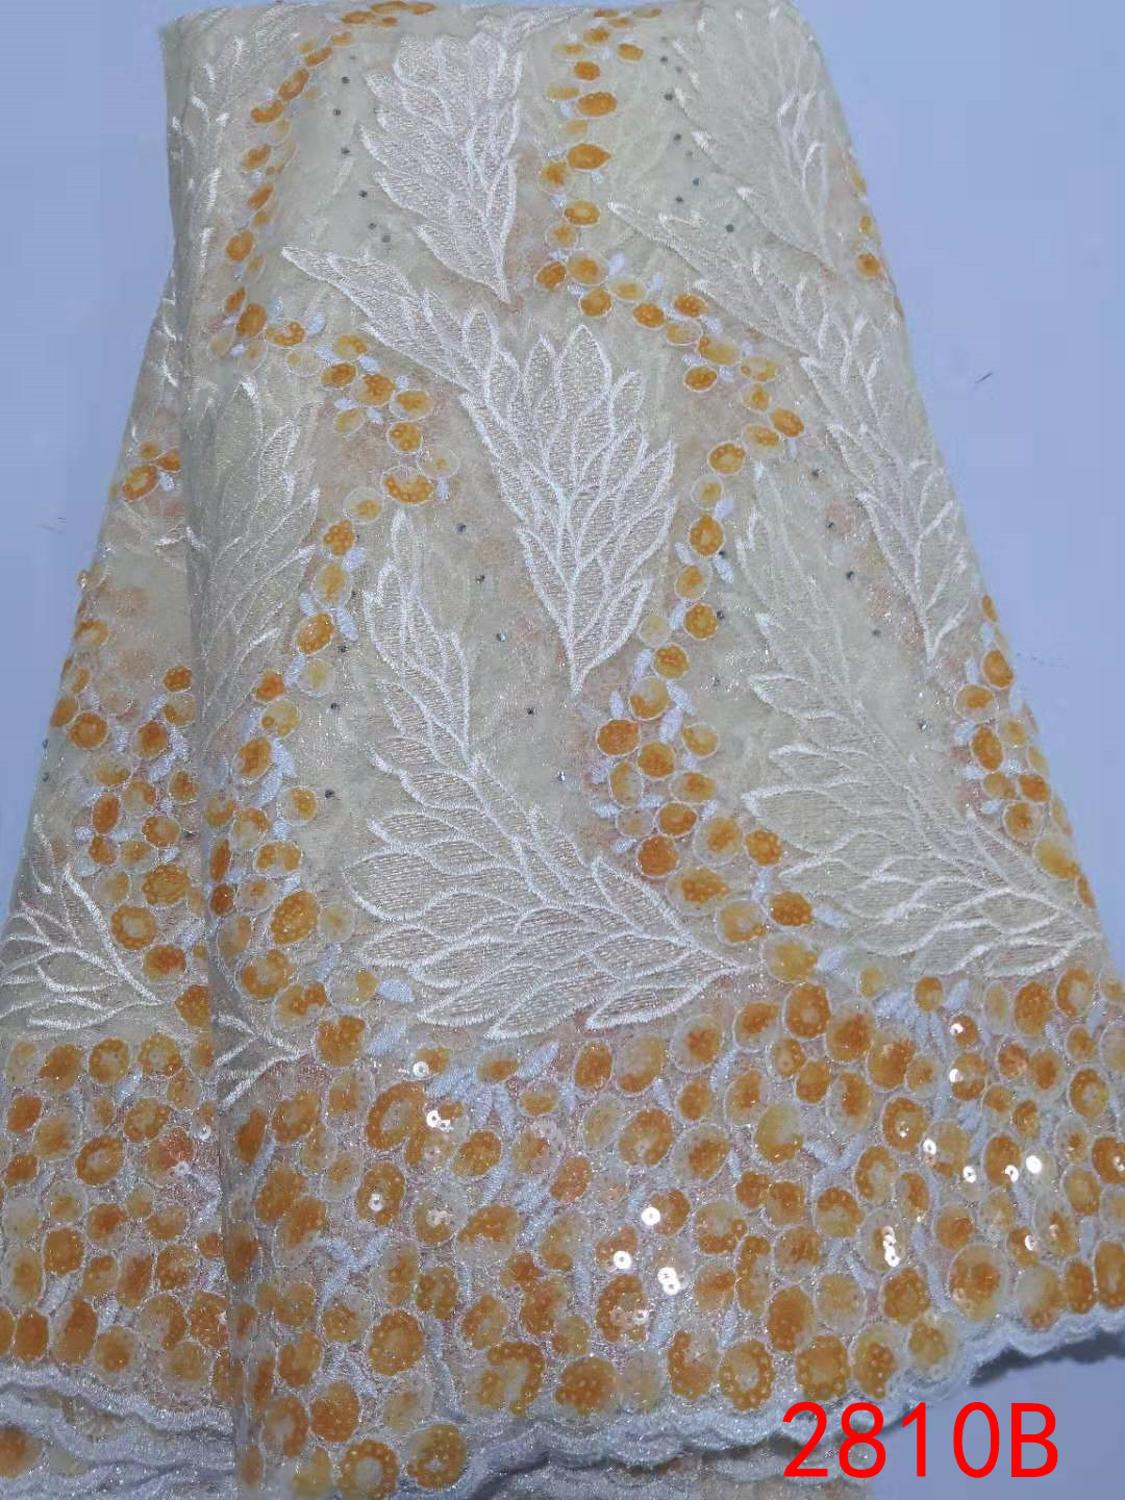 Hot Sale African Lace Fabric French Net Lace High Quaity Sequins Fabric Embroidery Tulle Lace Fabric For Nigerian PartyKS2810B